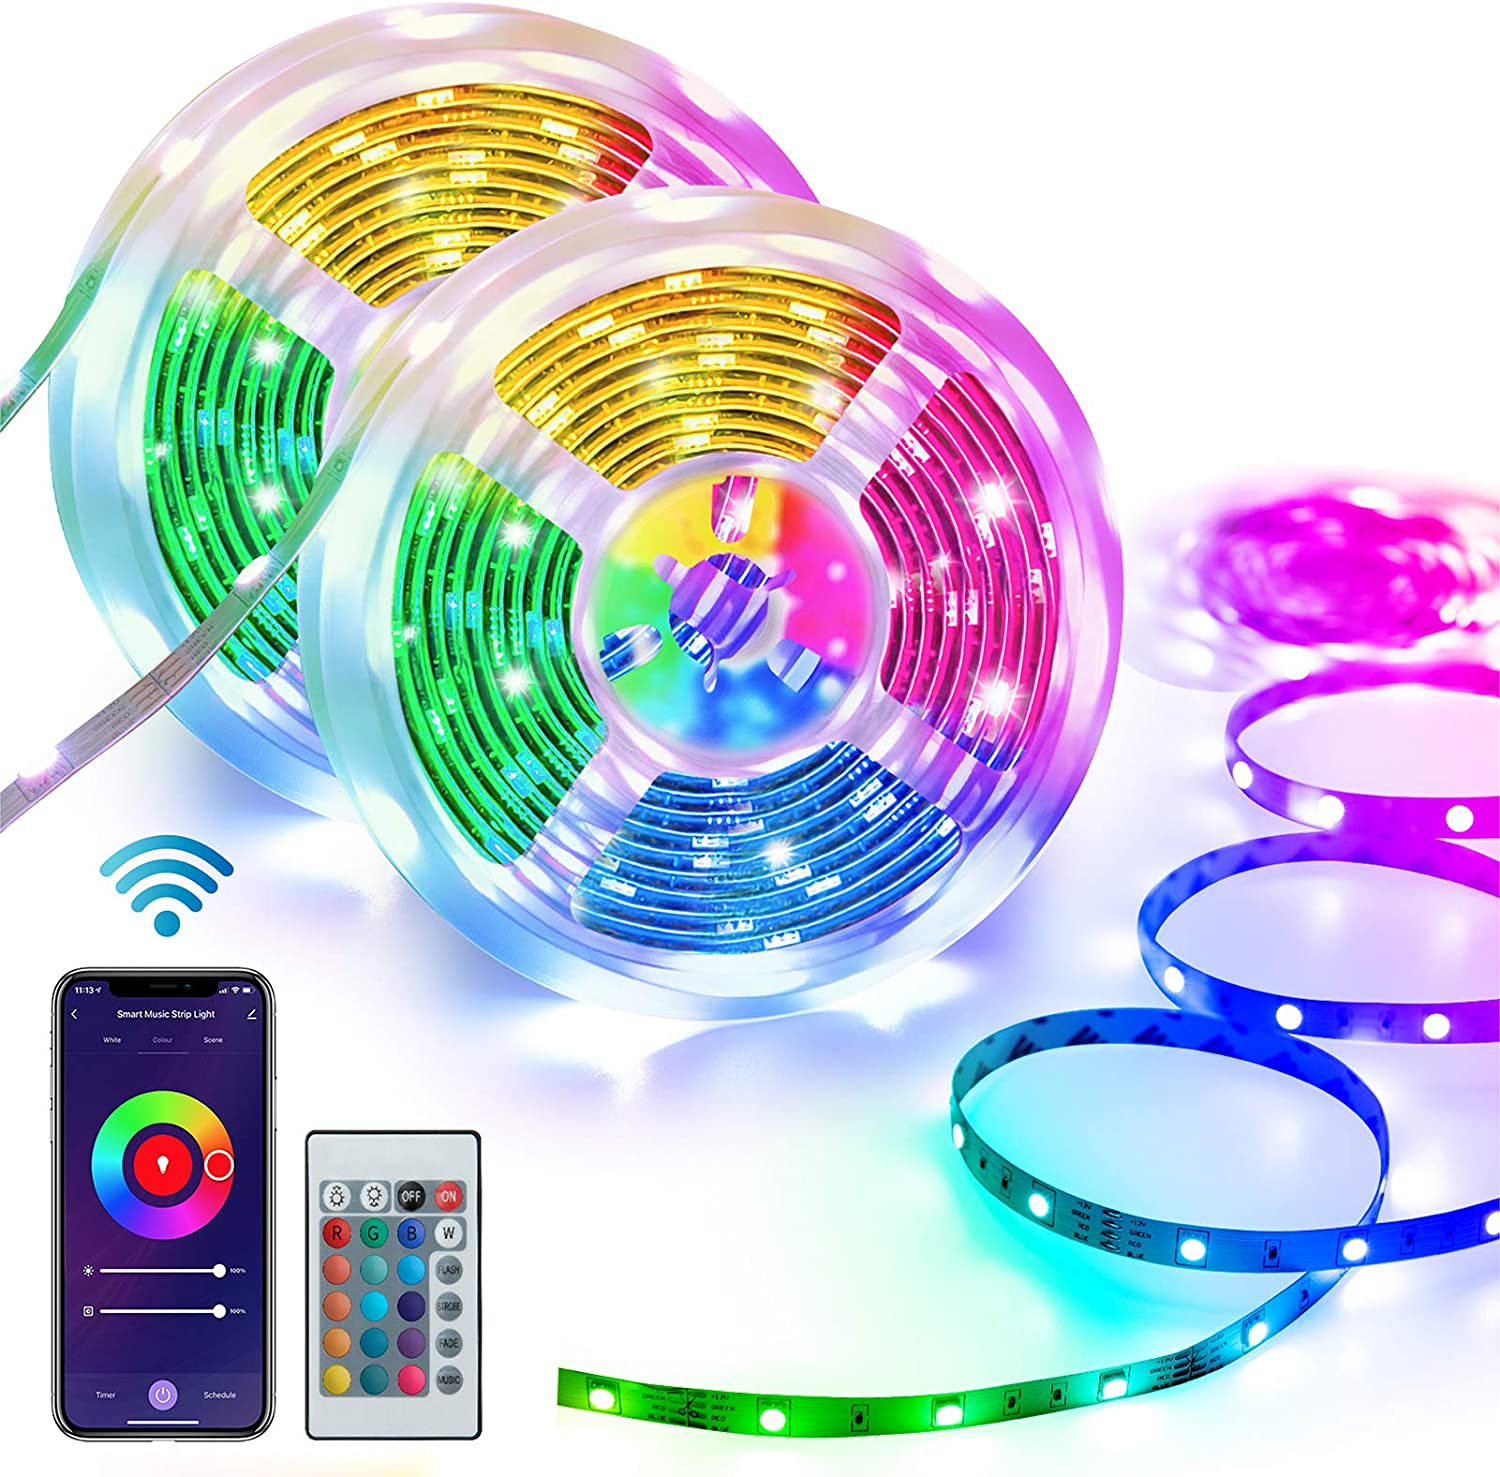 Homeyard Led Strip Lights 32.8FT LED Light for Bedroom WiFi RGB Light Strips Work with Alexa Google Assistant Remote APP Control Music Sync Rope Light Color Changing for Home Kitchen Tv Party DIY